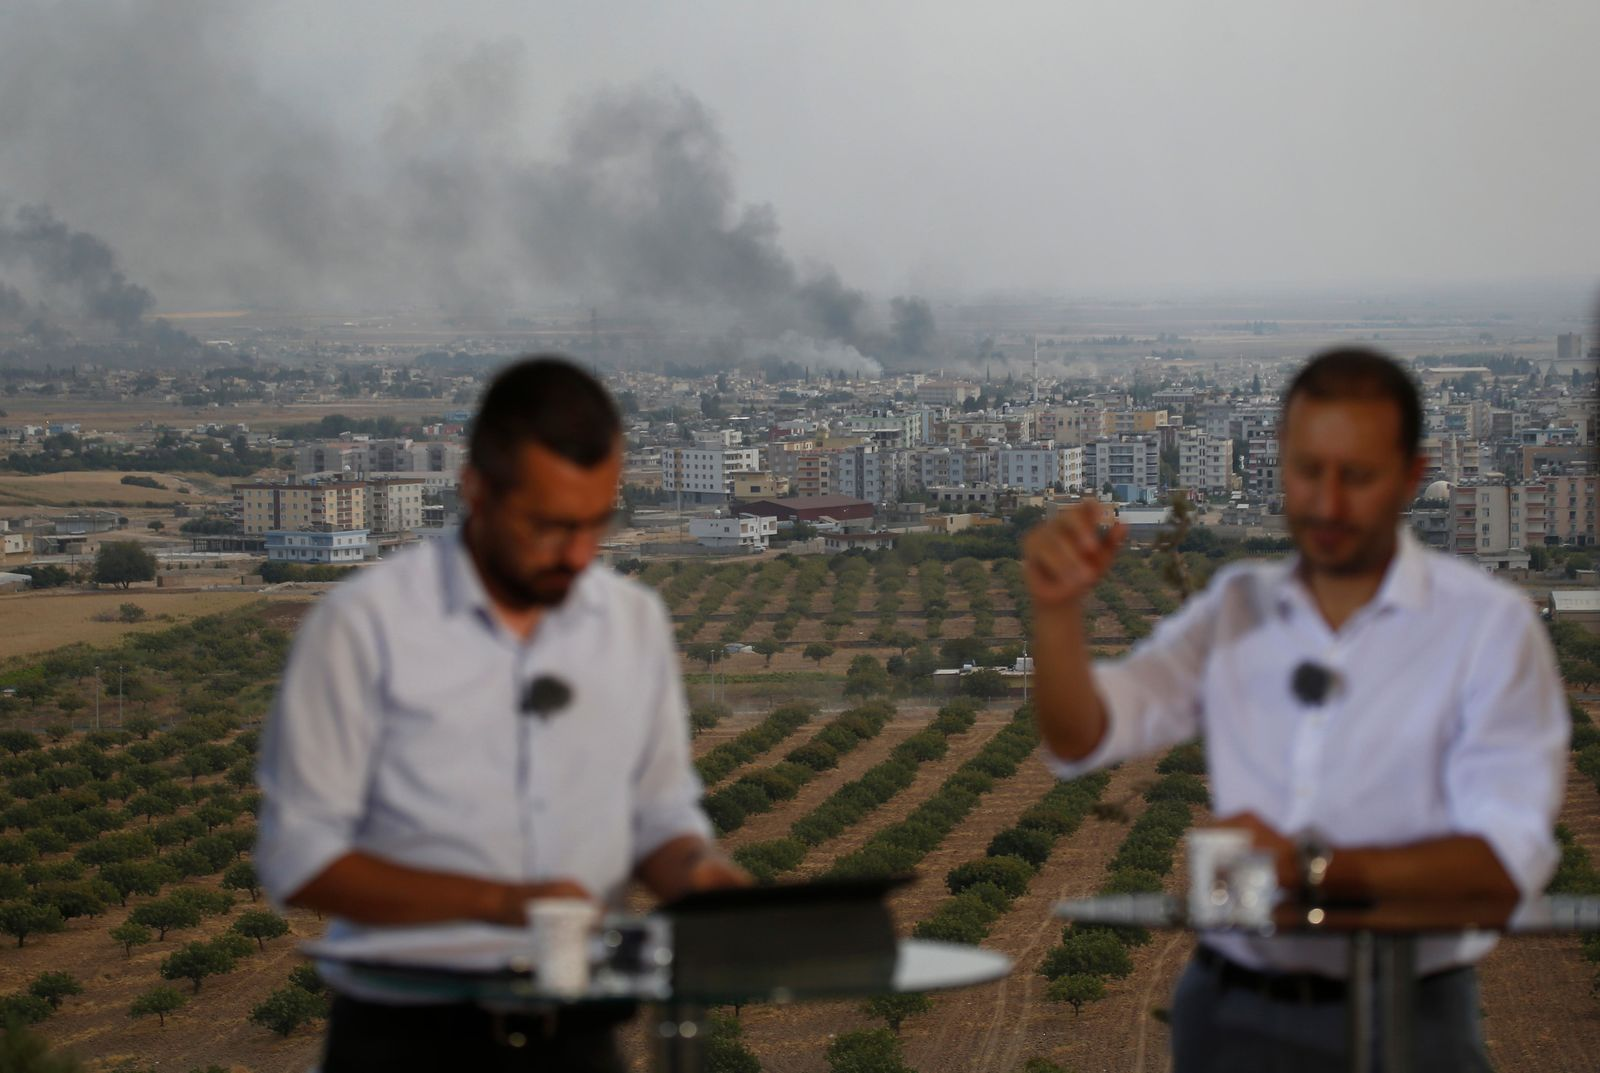 TV journalists talk during a live broadcast on a hilltop in Ceylanpinar, Sanliurfa province, southeastern Turkey, as in the background smoke billows from targets in Ras al-Ayn, Syria, during bombardment by Turkish forces, Wednesday, Oct. 16, 2019. Turkey's President Recep Tayyip Erdogan called Wednesday on Syrian Kurdish fighters to leave a designated border area in northeast Syria 'as of tonight' for Turkey to stop its military offensive, defying pressure on him to call a ceasefire and halt its incursion into Syria, now into its eighth day.(AP Photo/Lefteris Pitarakis)